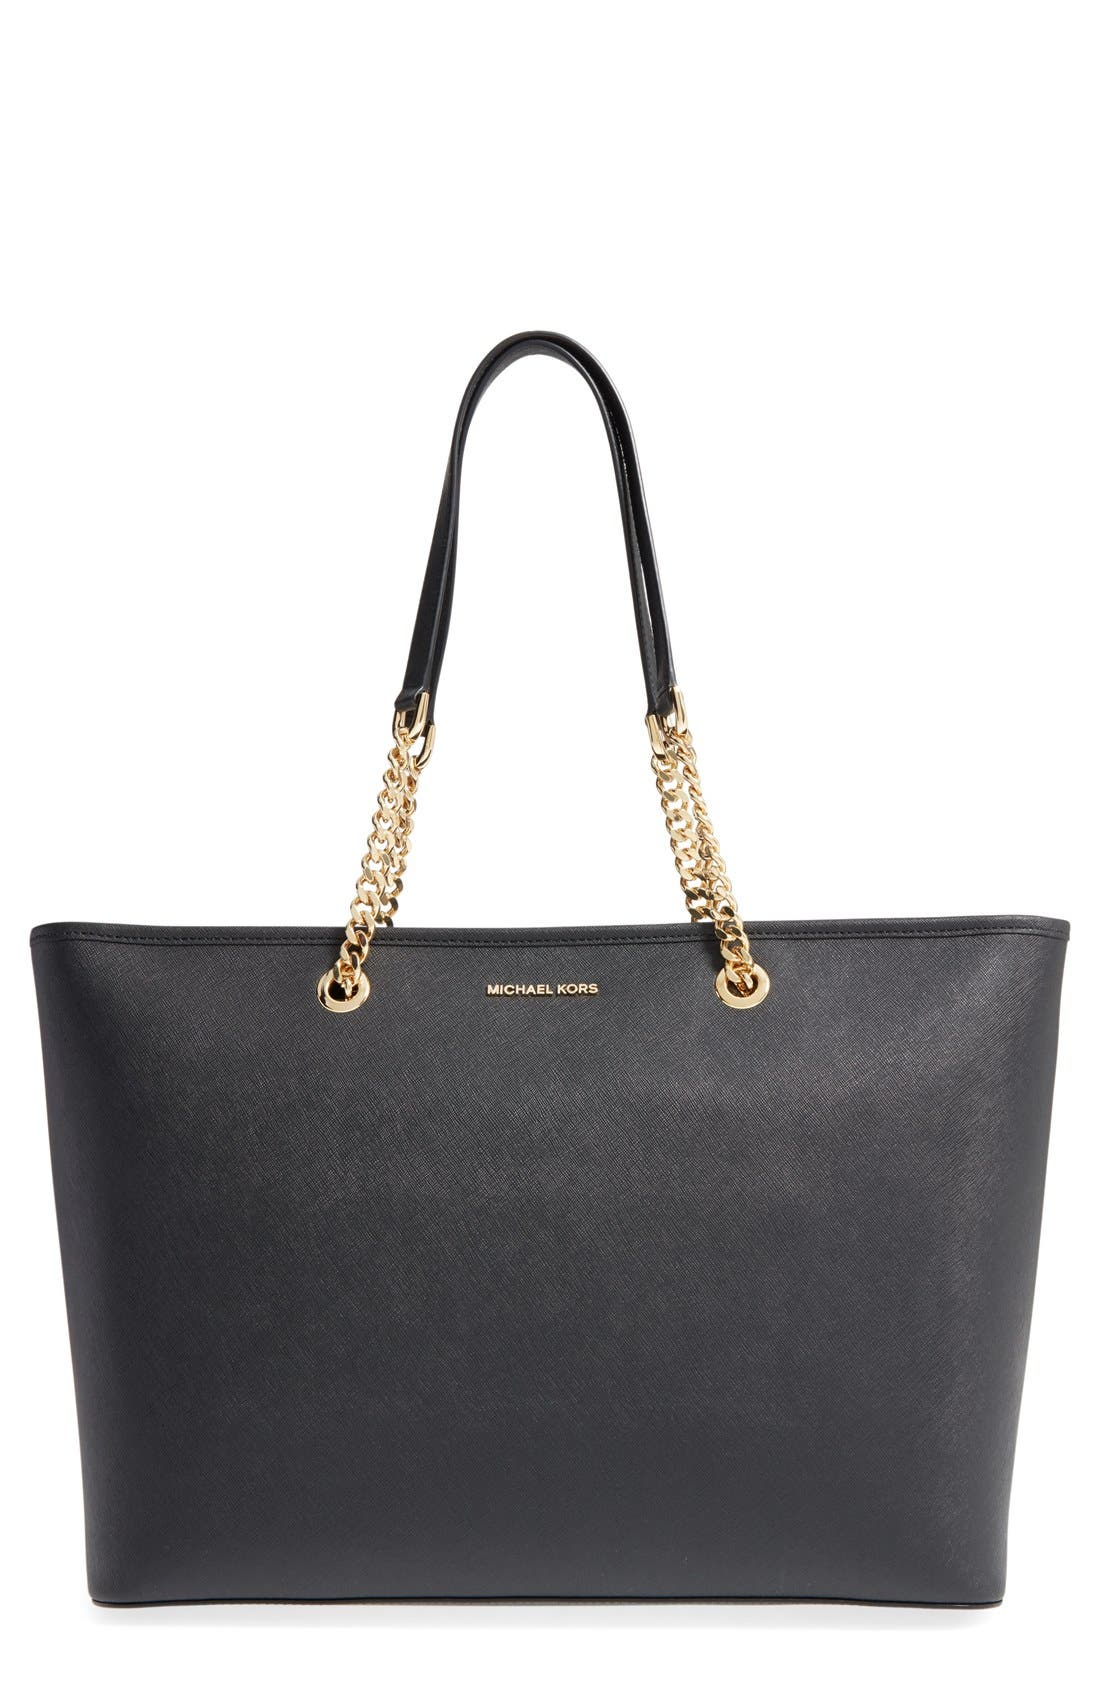 MICHAEL Michael Kors \u0027Medium Jet Set Chain\u0027 Saffiano Leather Tote